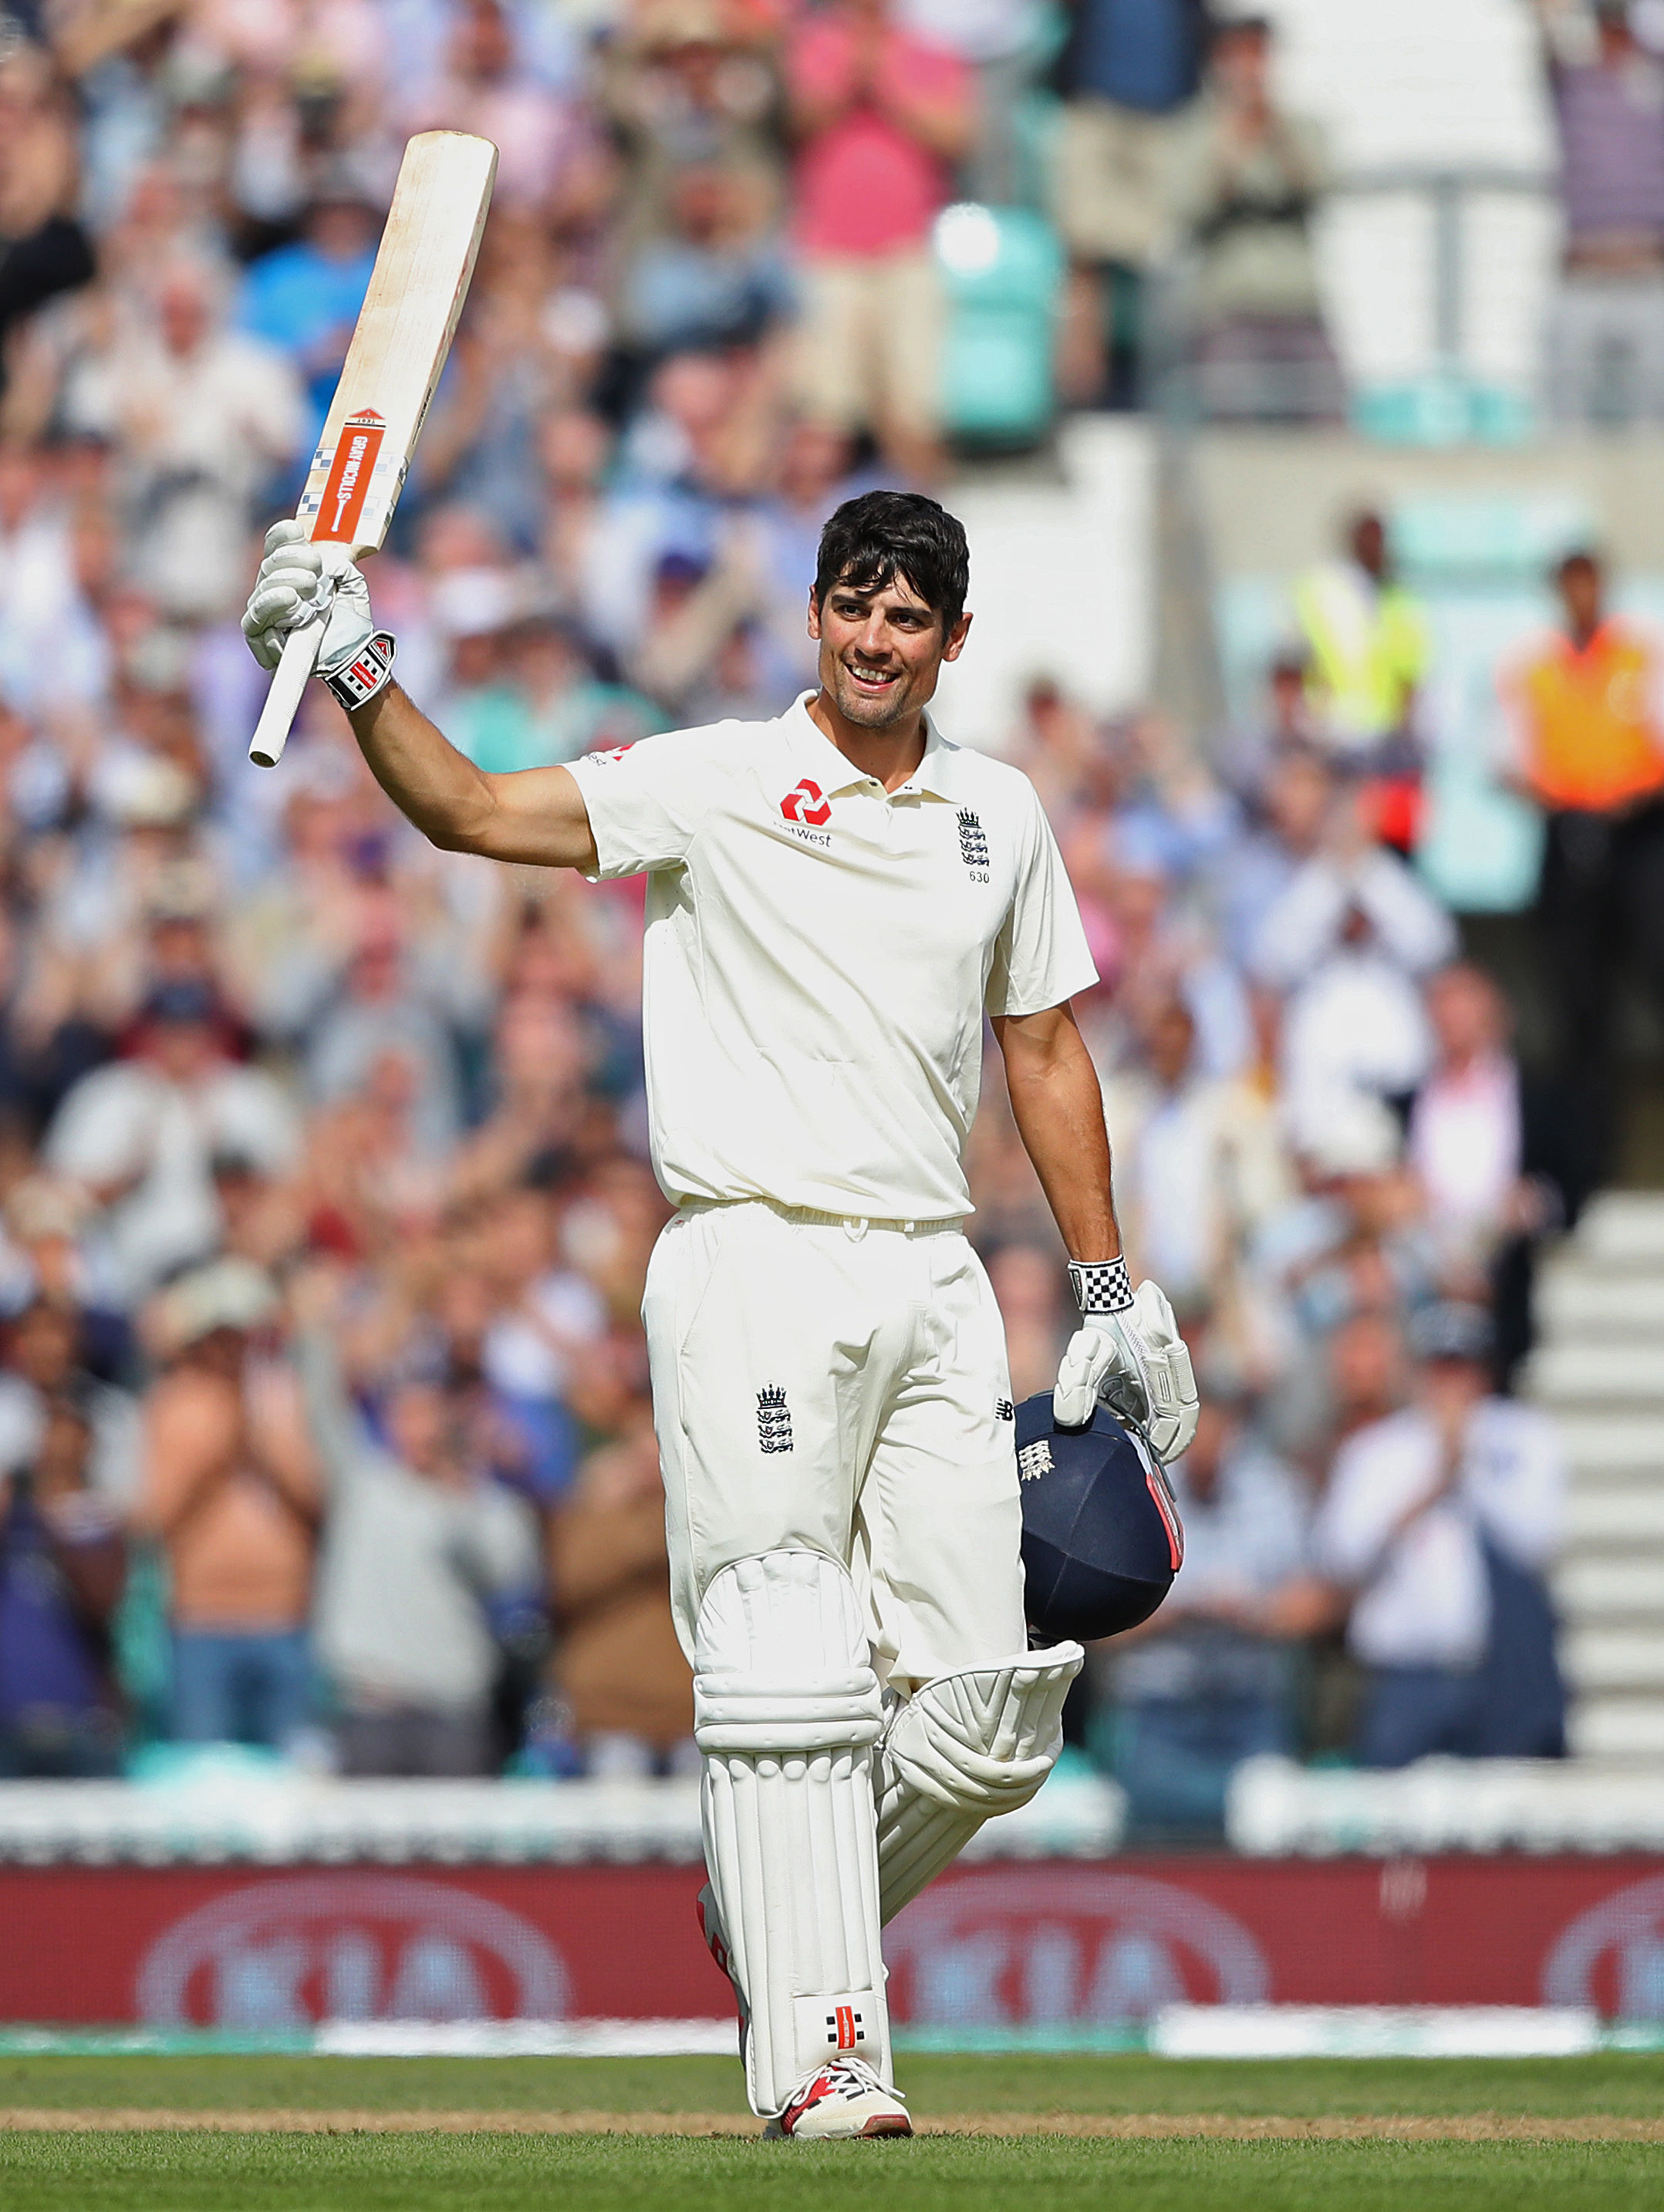 Set for a knighthood? - Alastair Cook